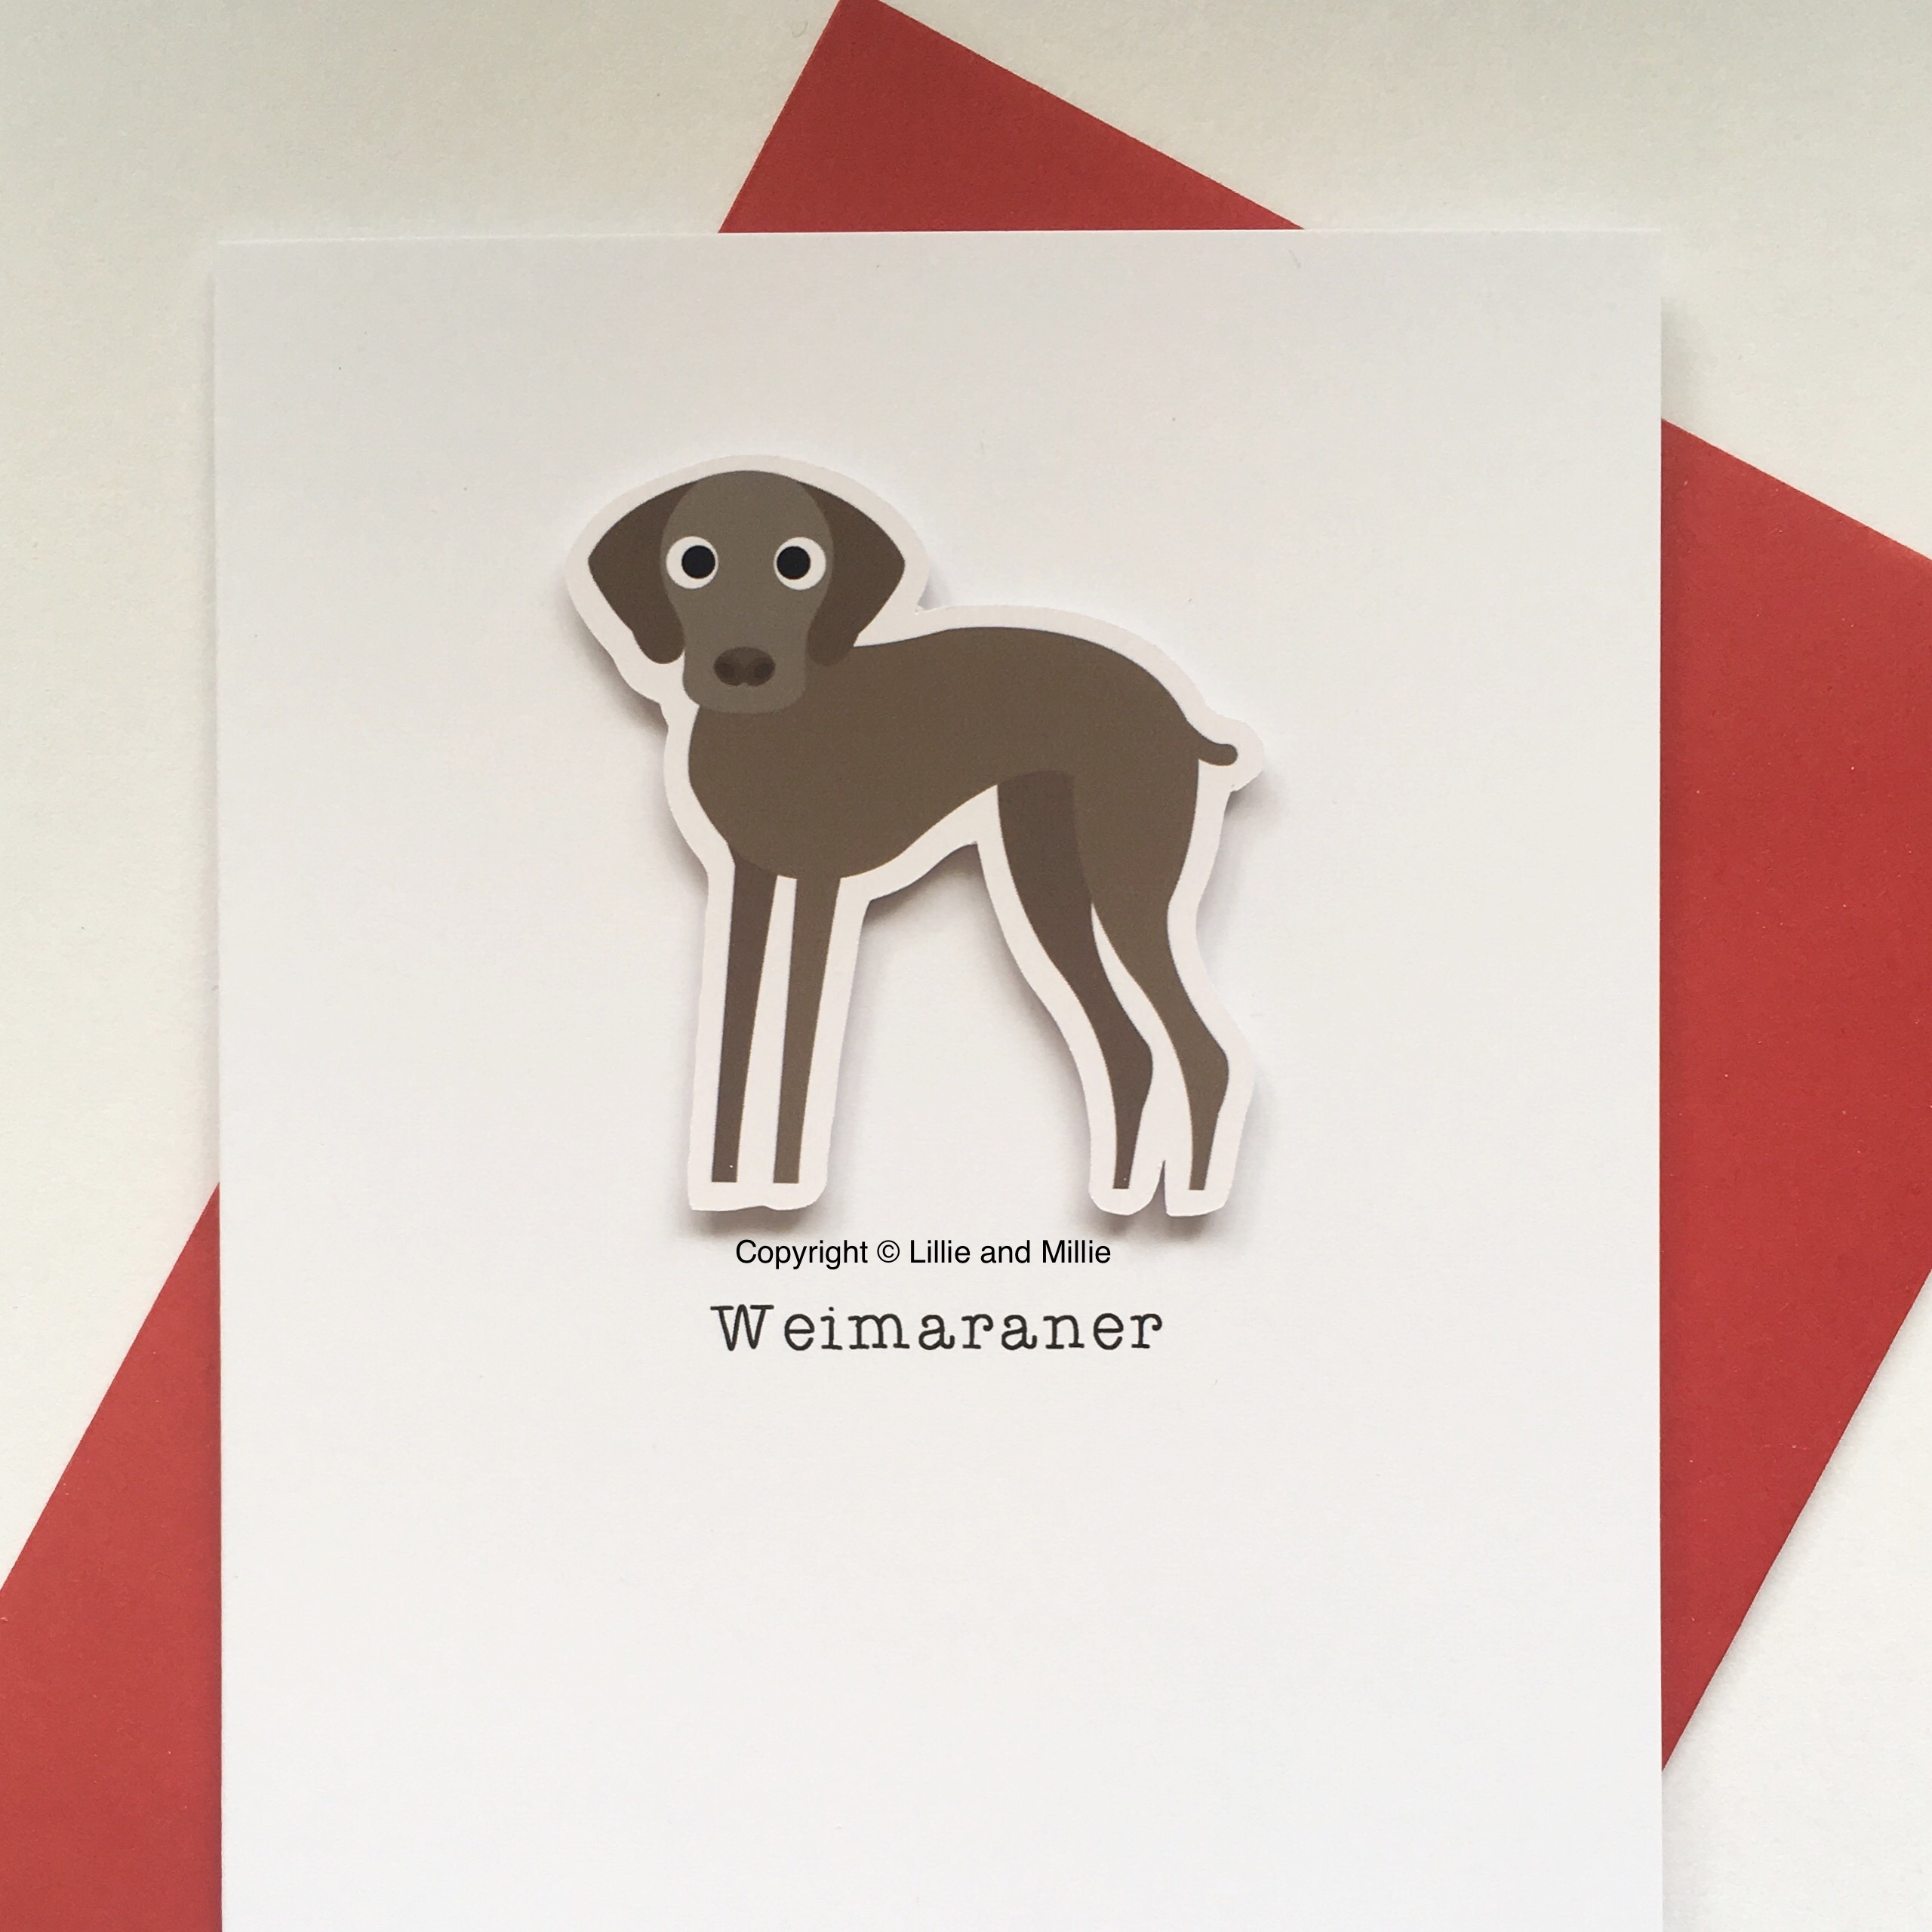 Cute and Cuddly Weimaraner Card